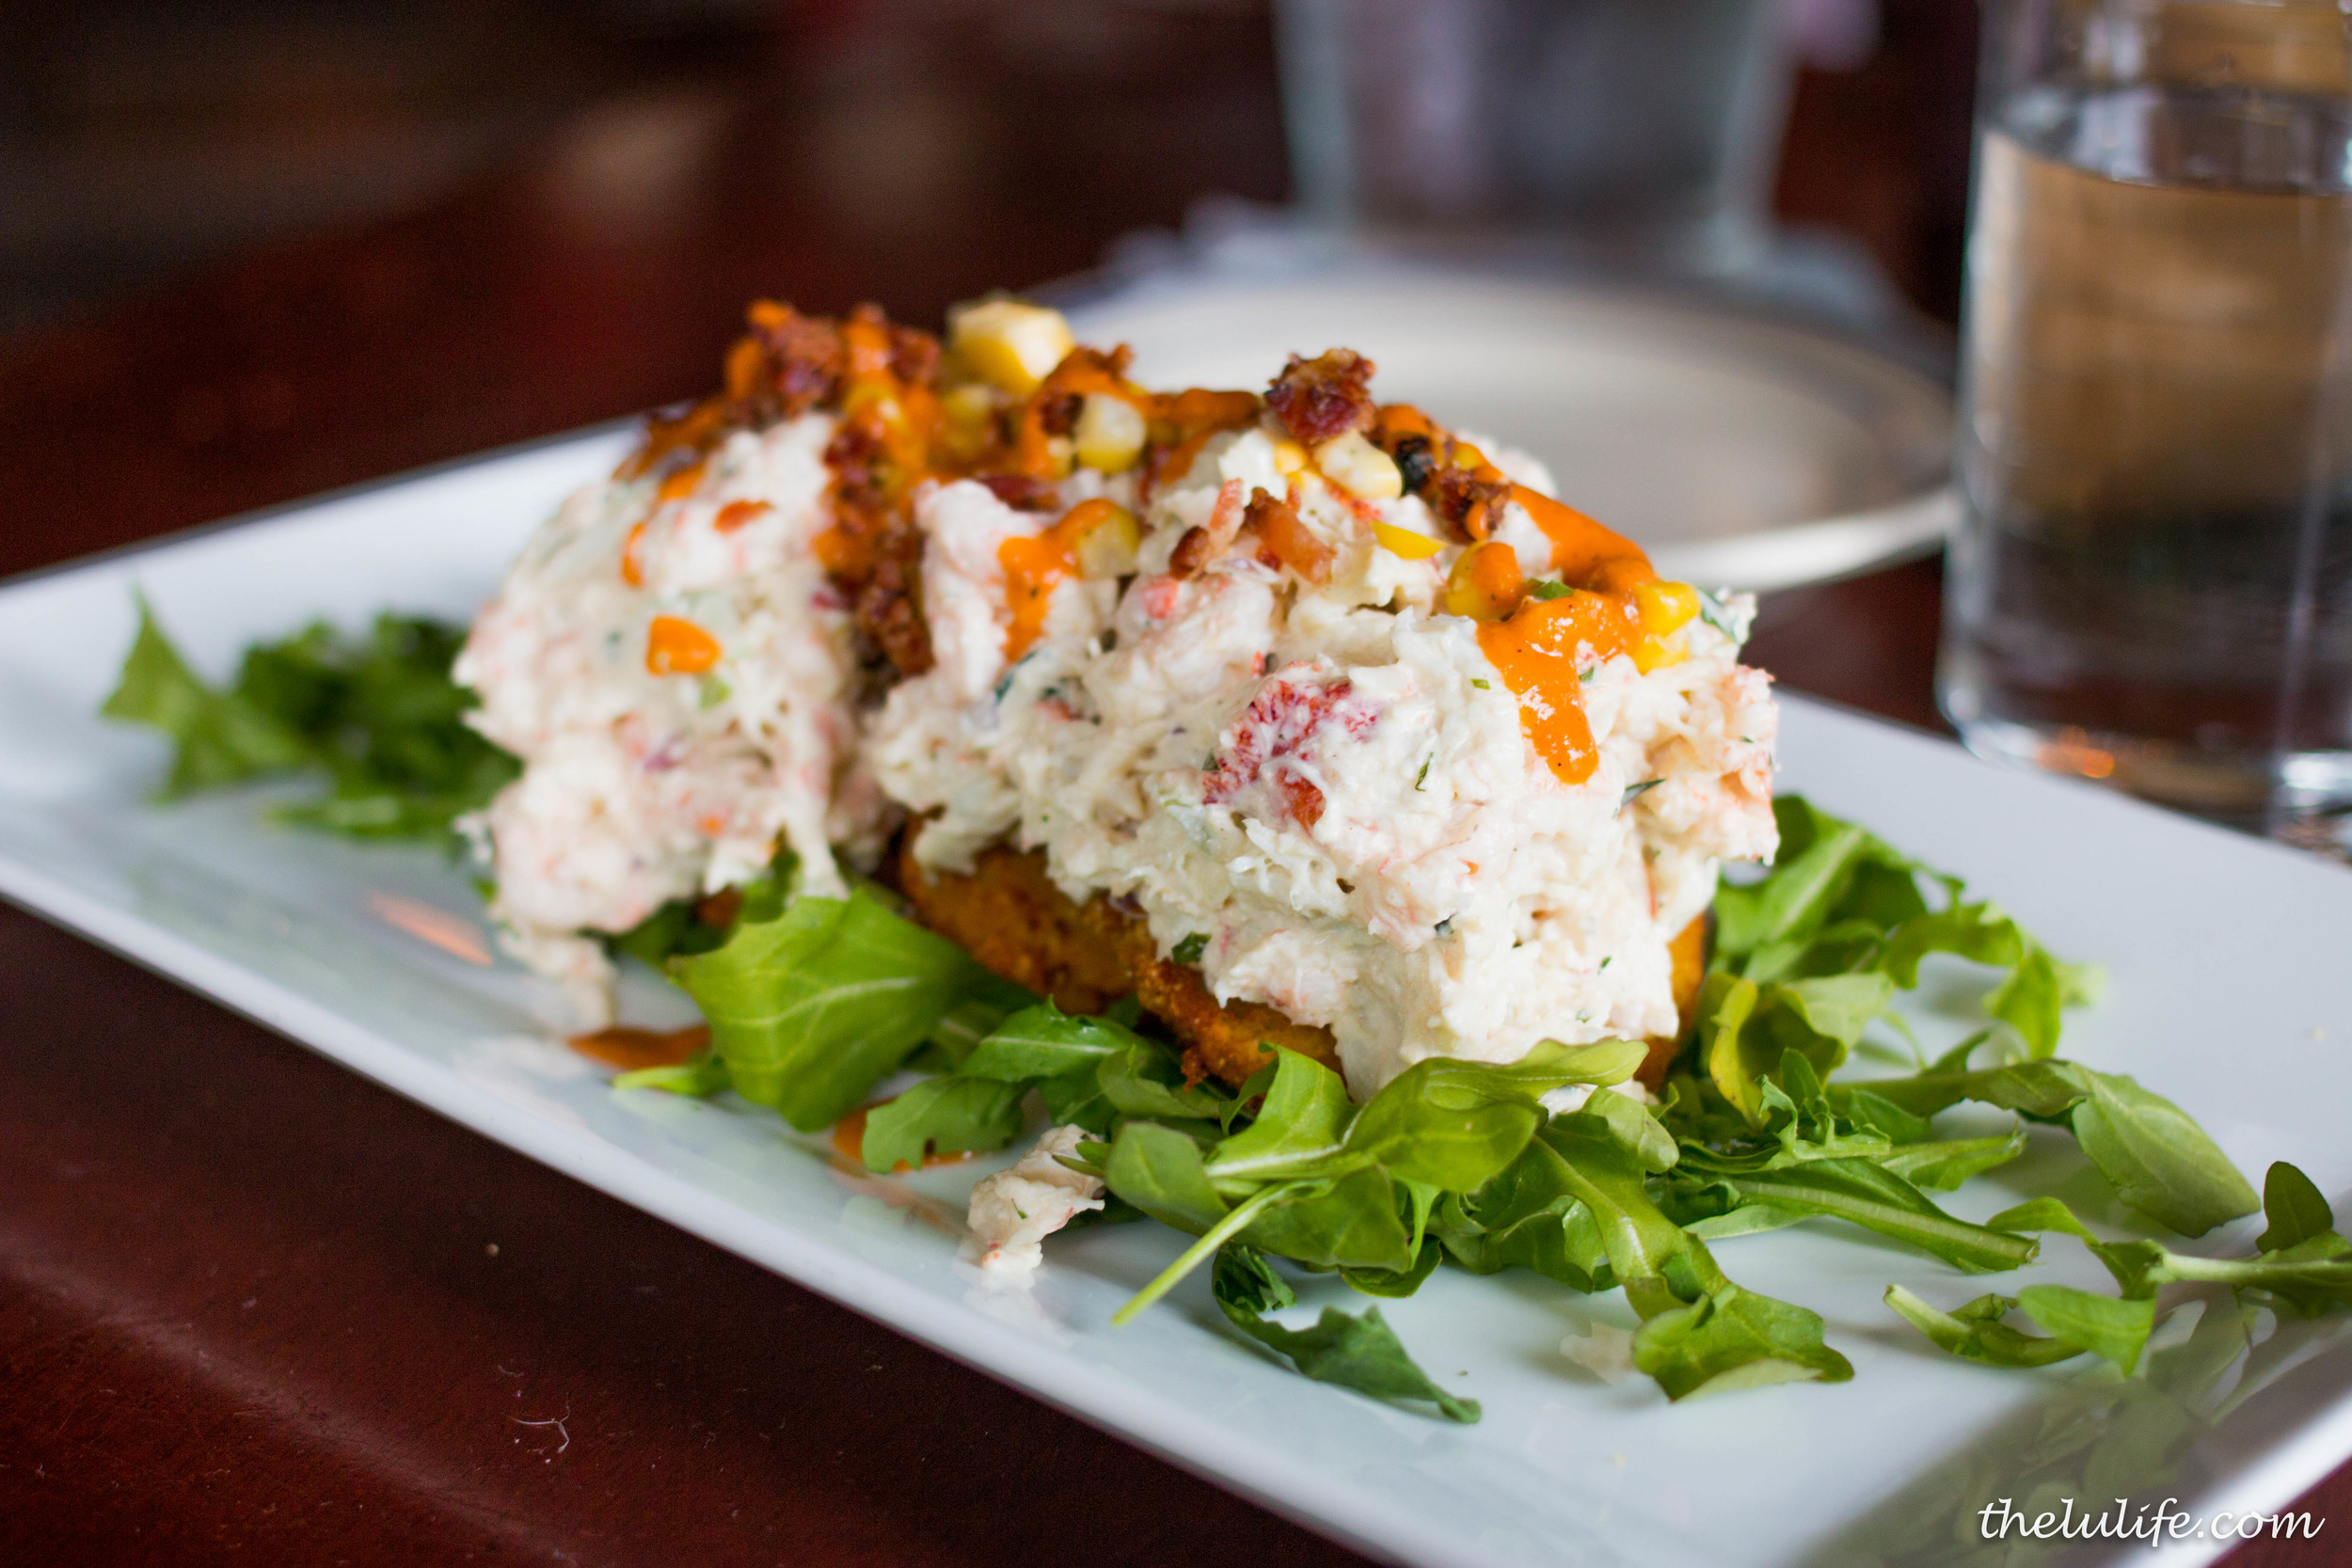 The Sea BLT - Lobster, shrimp, crab salad and corn over fried green tomatoes and topped with bacon and smoked tomato vinaigrette